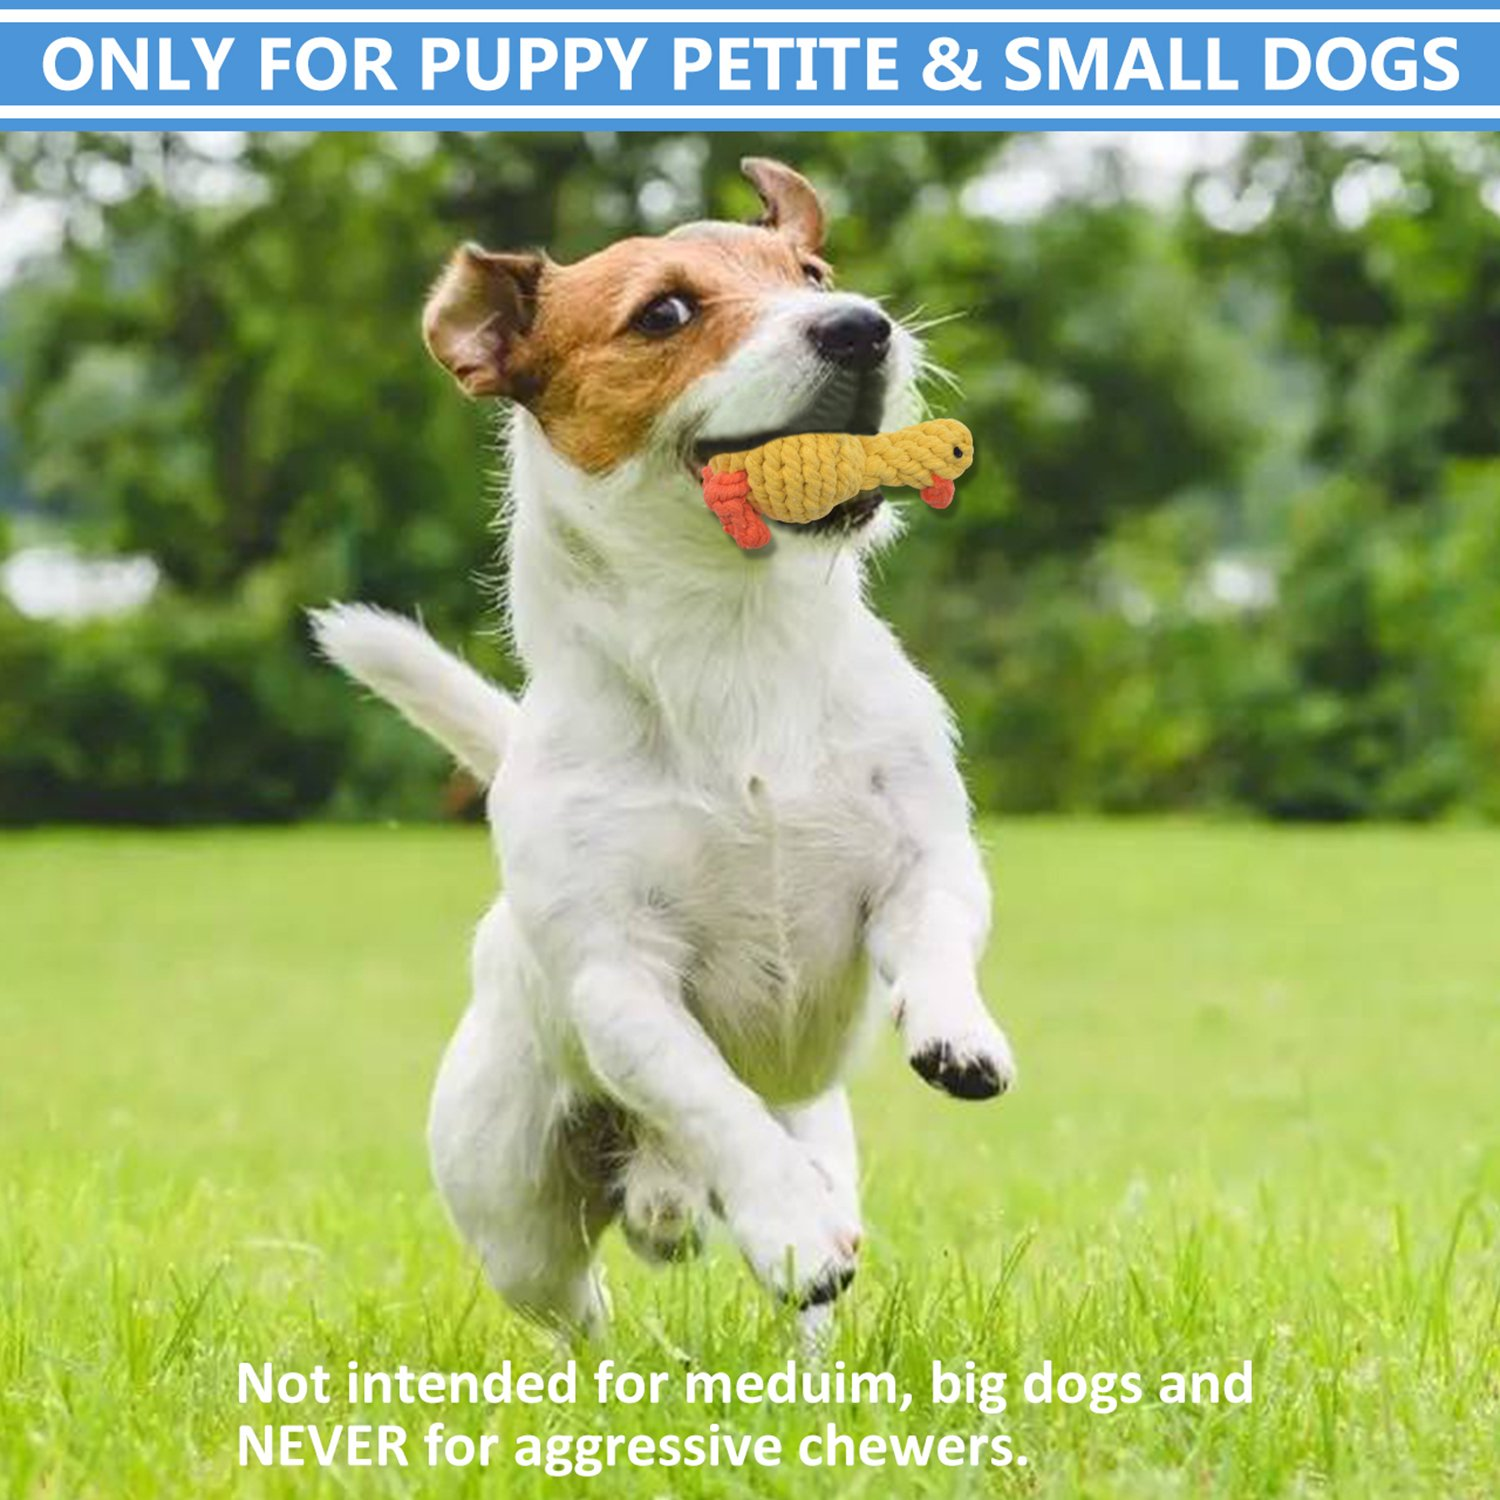 Dog Rope Toys Cute Animals Design, Cotton Puppy Toys for Small Dogs. Rope Dog Toy Set pack of 6 by TOYSBOOM (Image #5)